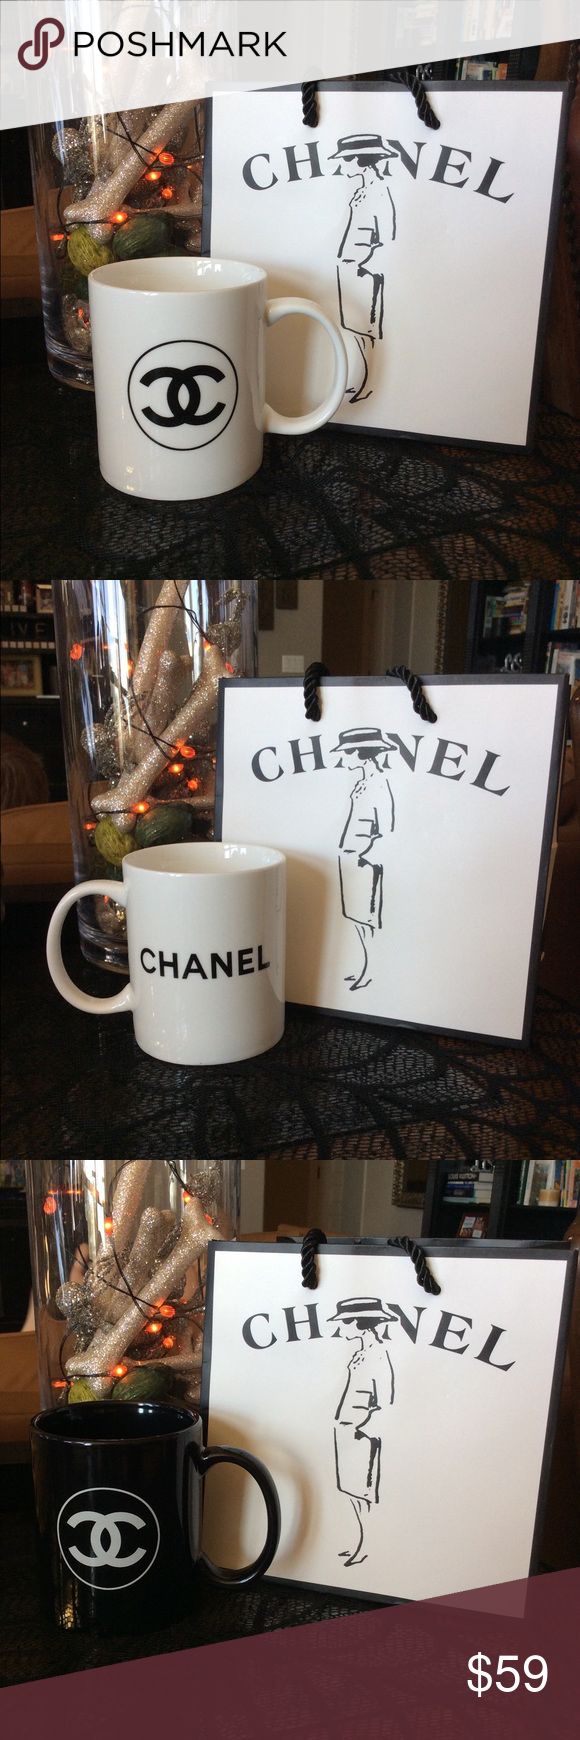 Chanel mug New with gift bag CHANEL Makeup Chanel makeup